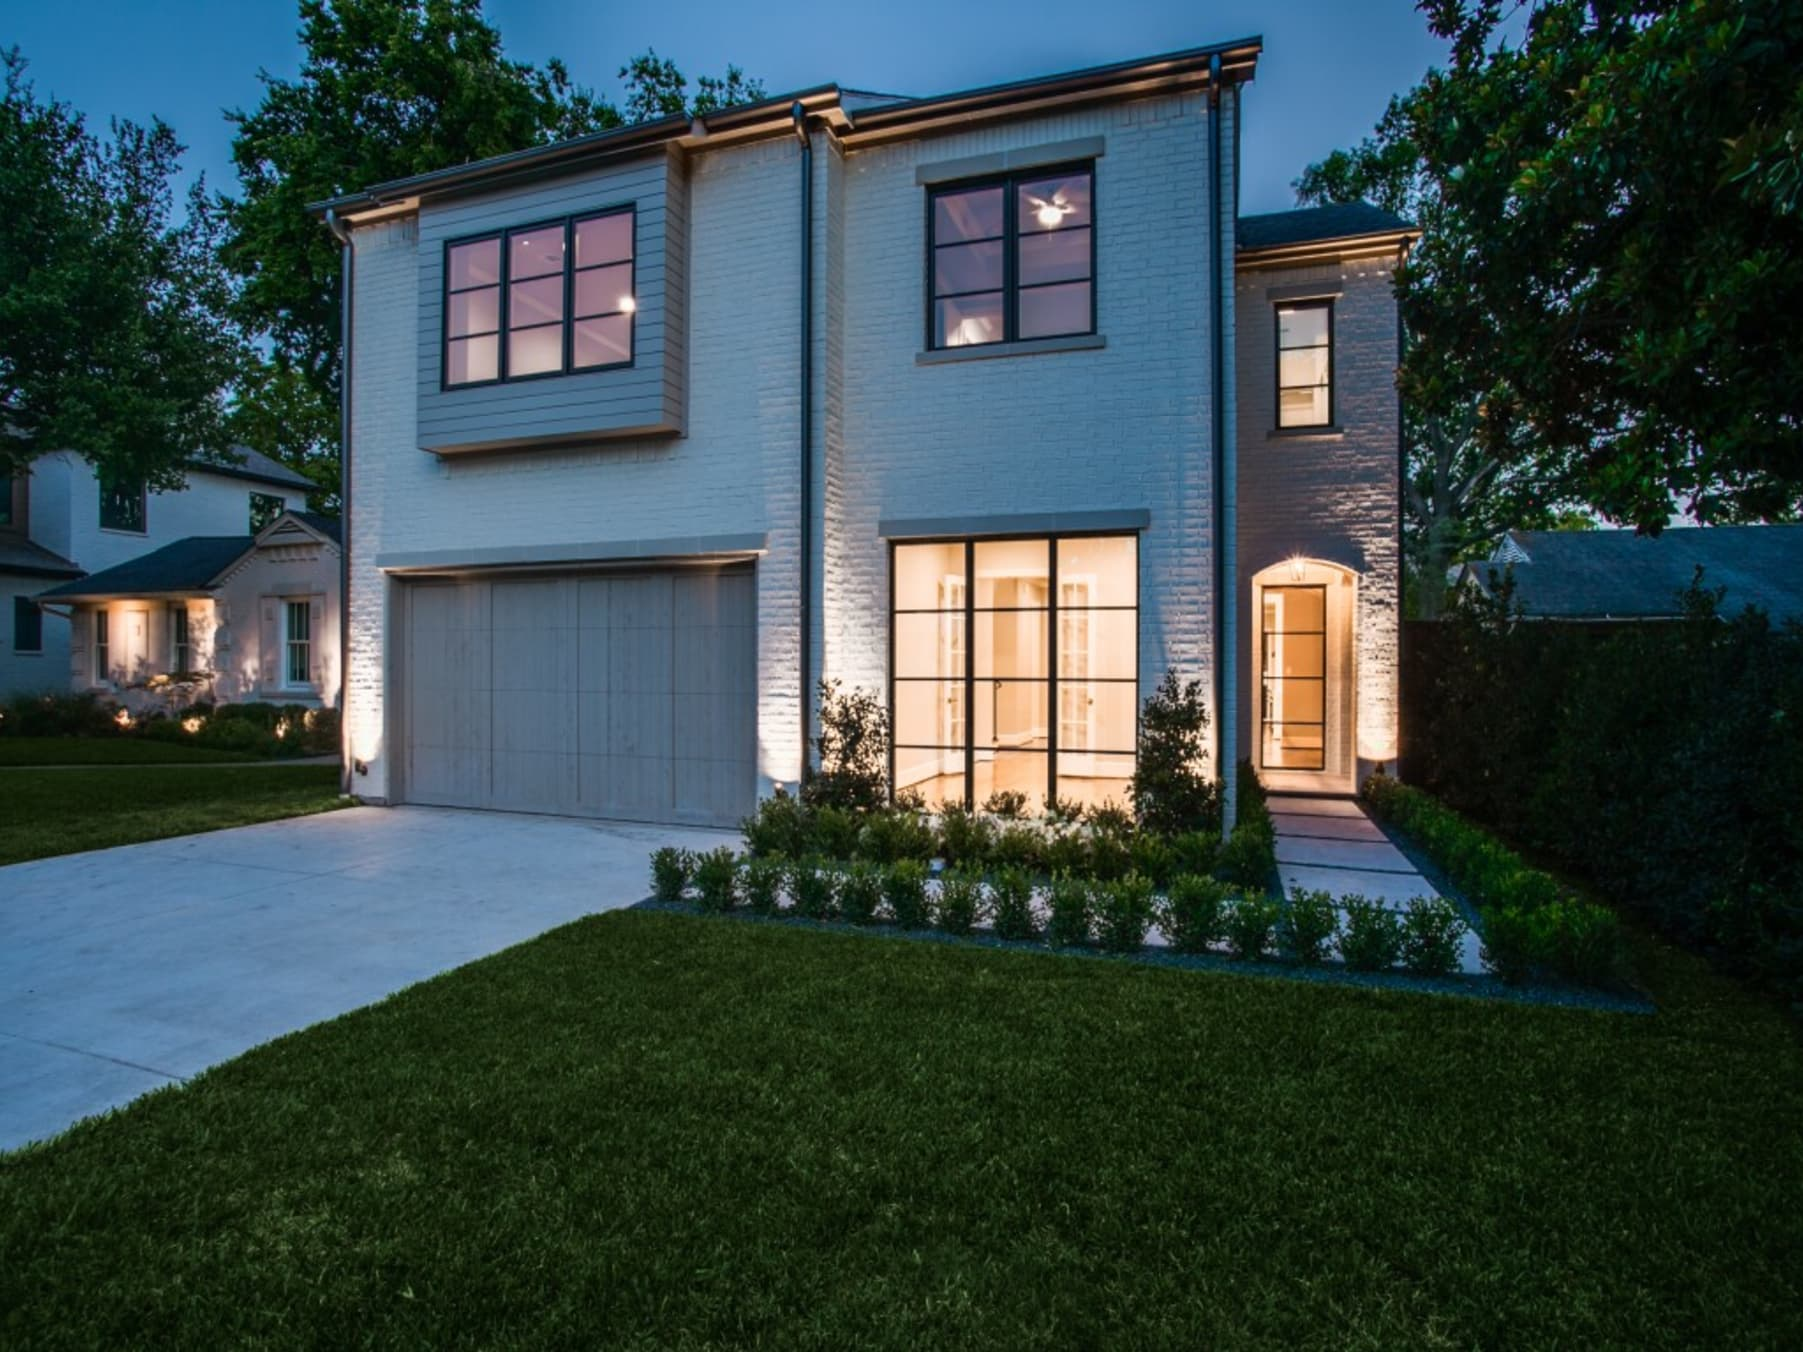 Dallas Luxury Real Estate Alexandre Christie Ac 2531 Silver Gold New Construction In Briarwood 4722 Purdue